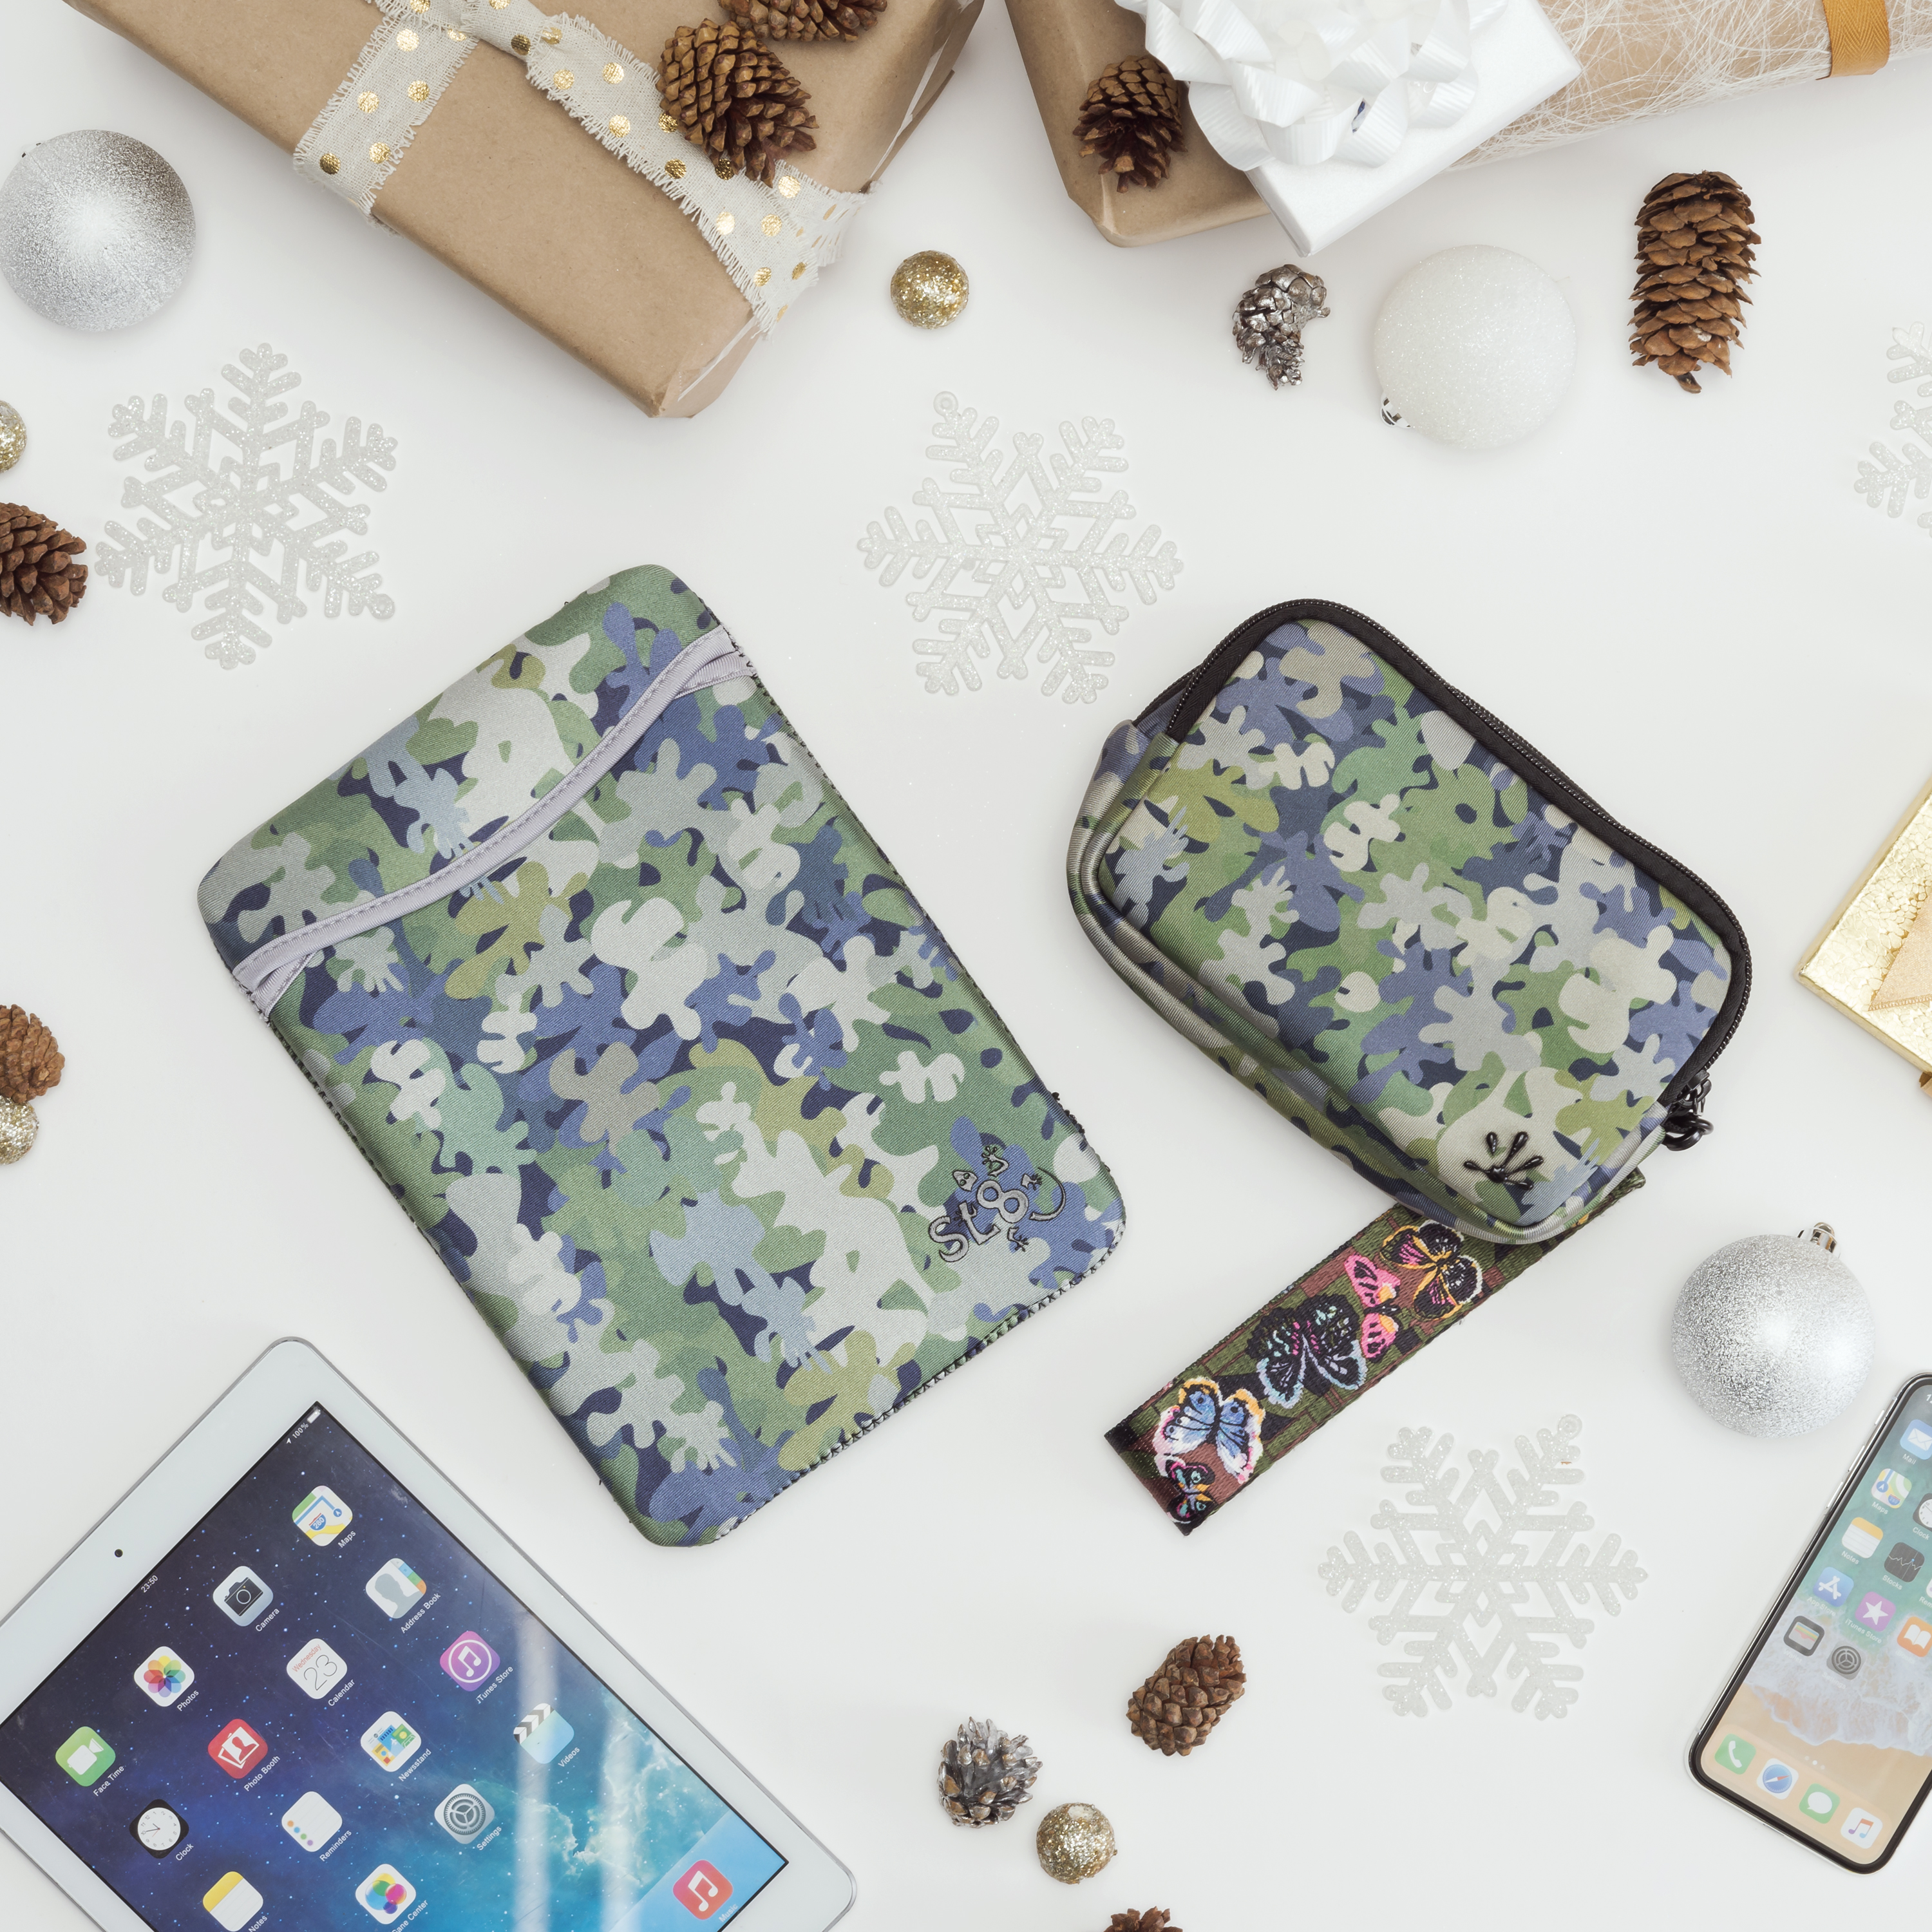 Why Your Business Needs Flat Lay Photography - Flat Lays Tips